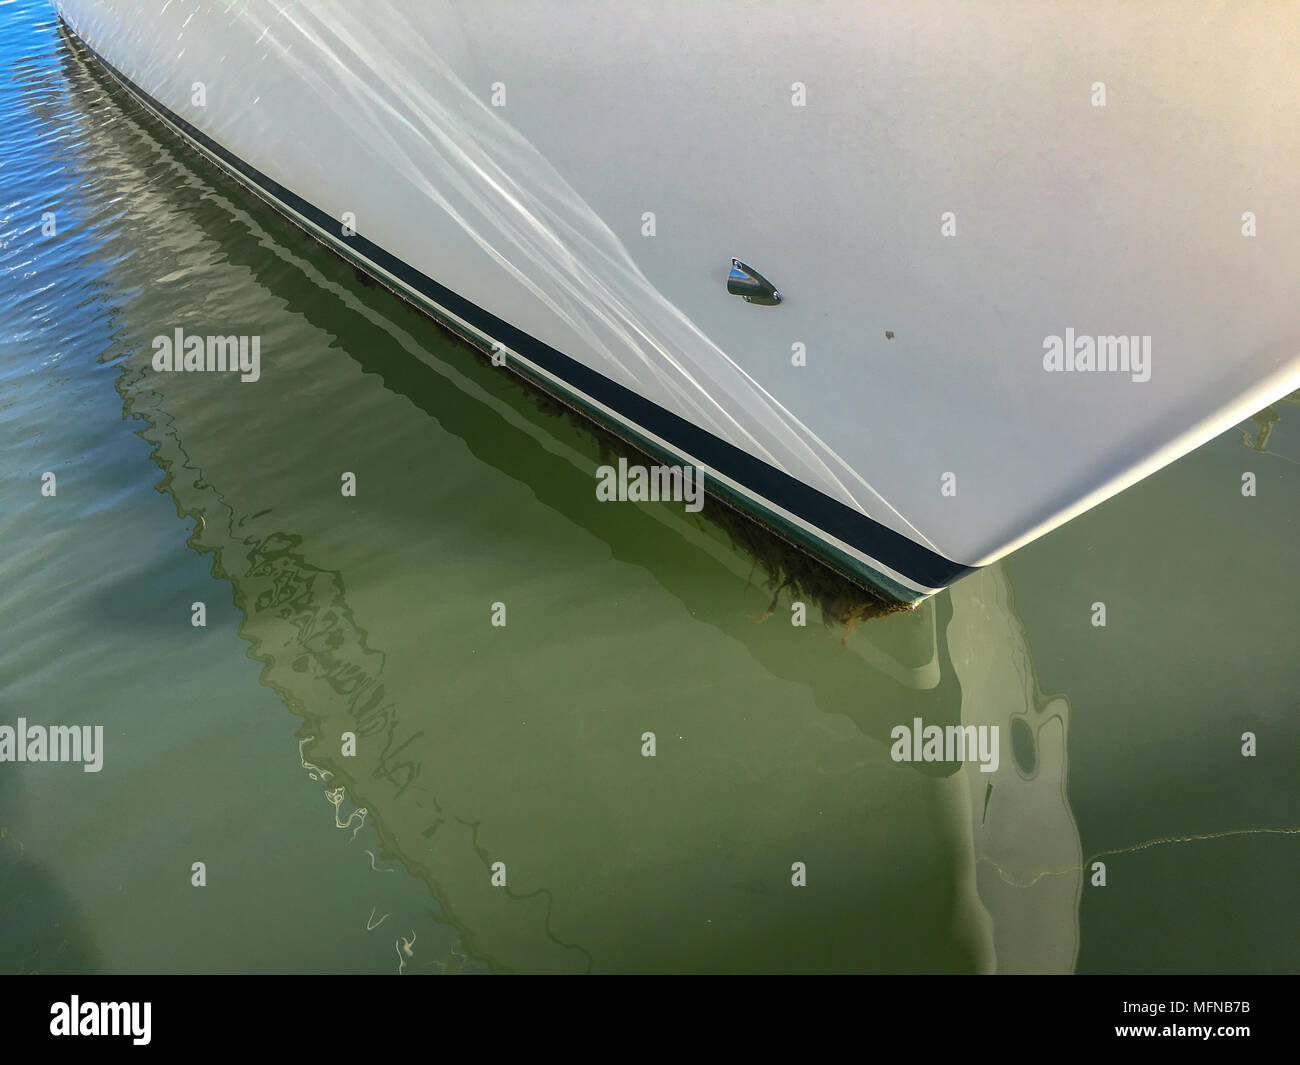 Weed growing on the hull of a sailing yacht - Stock Image